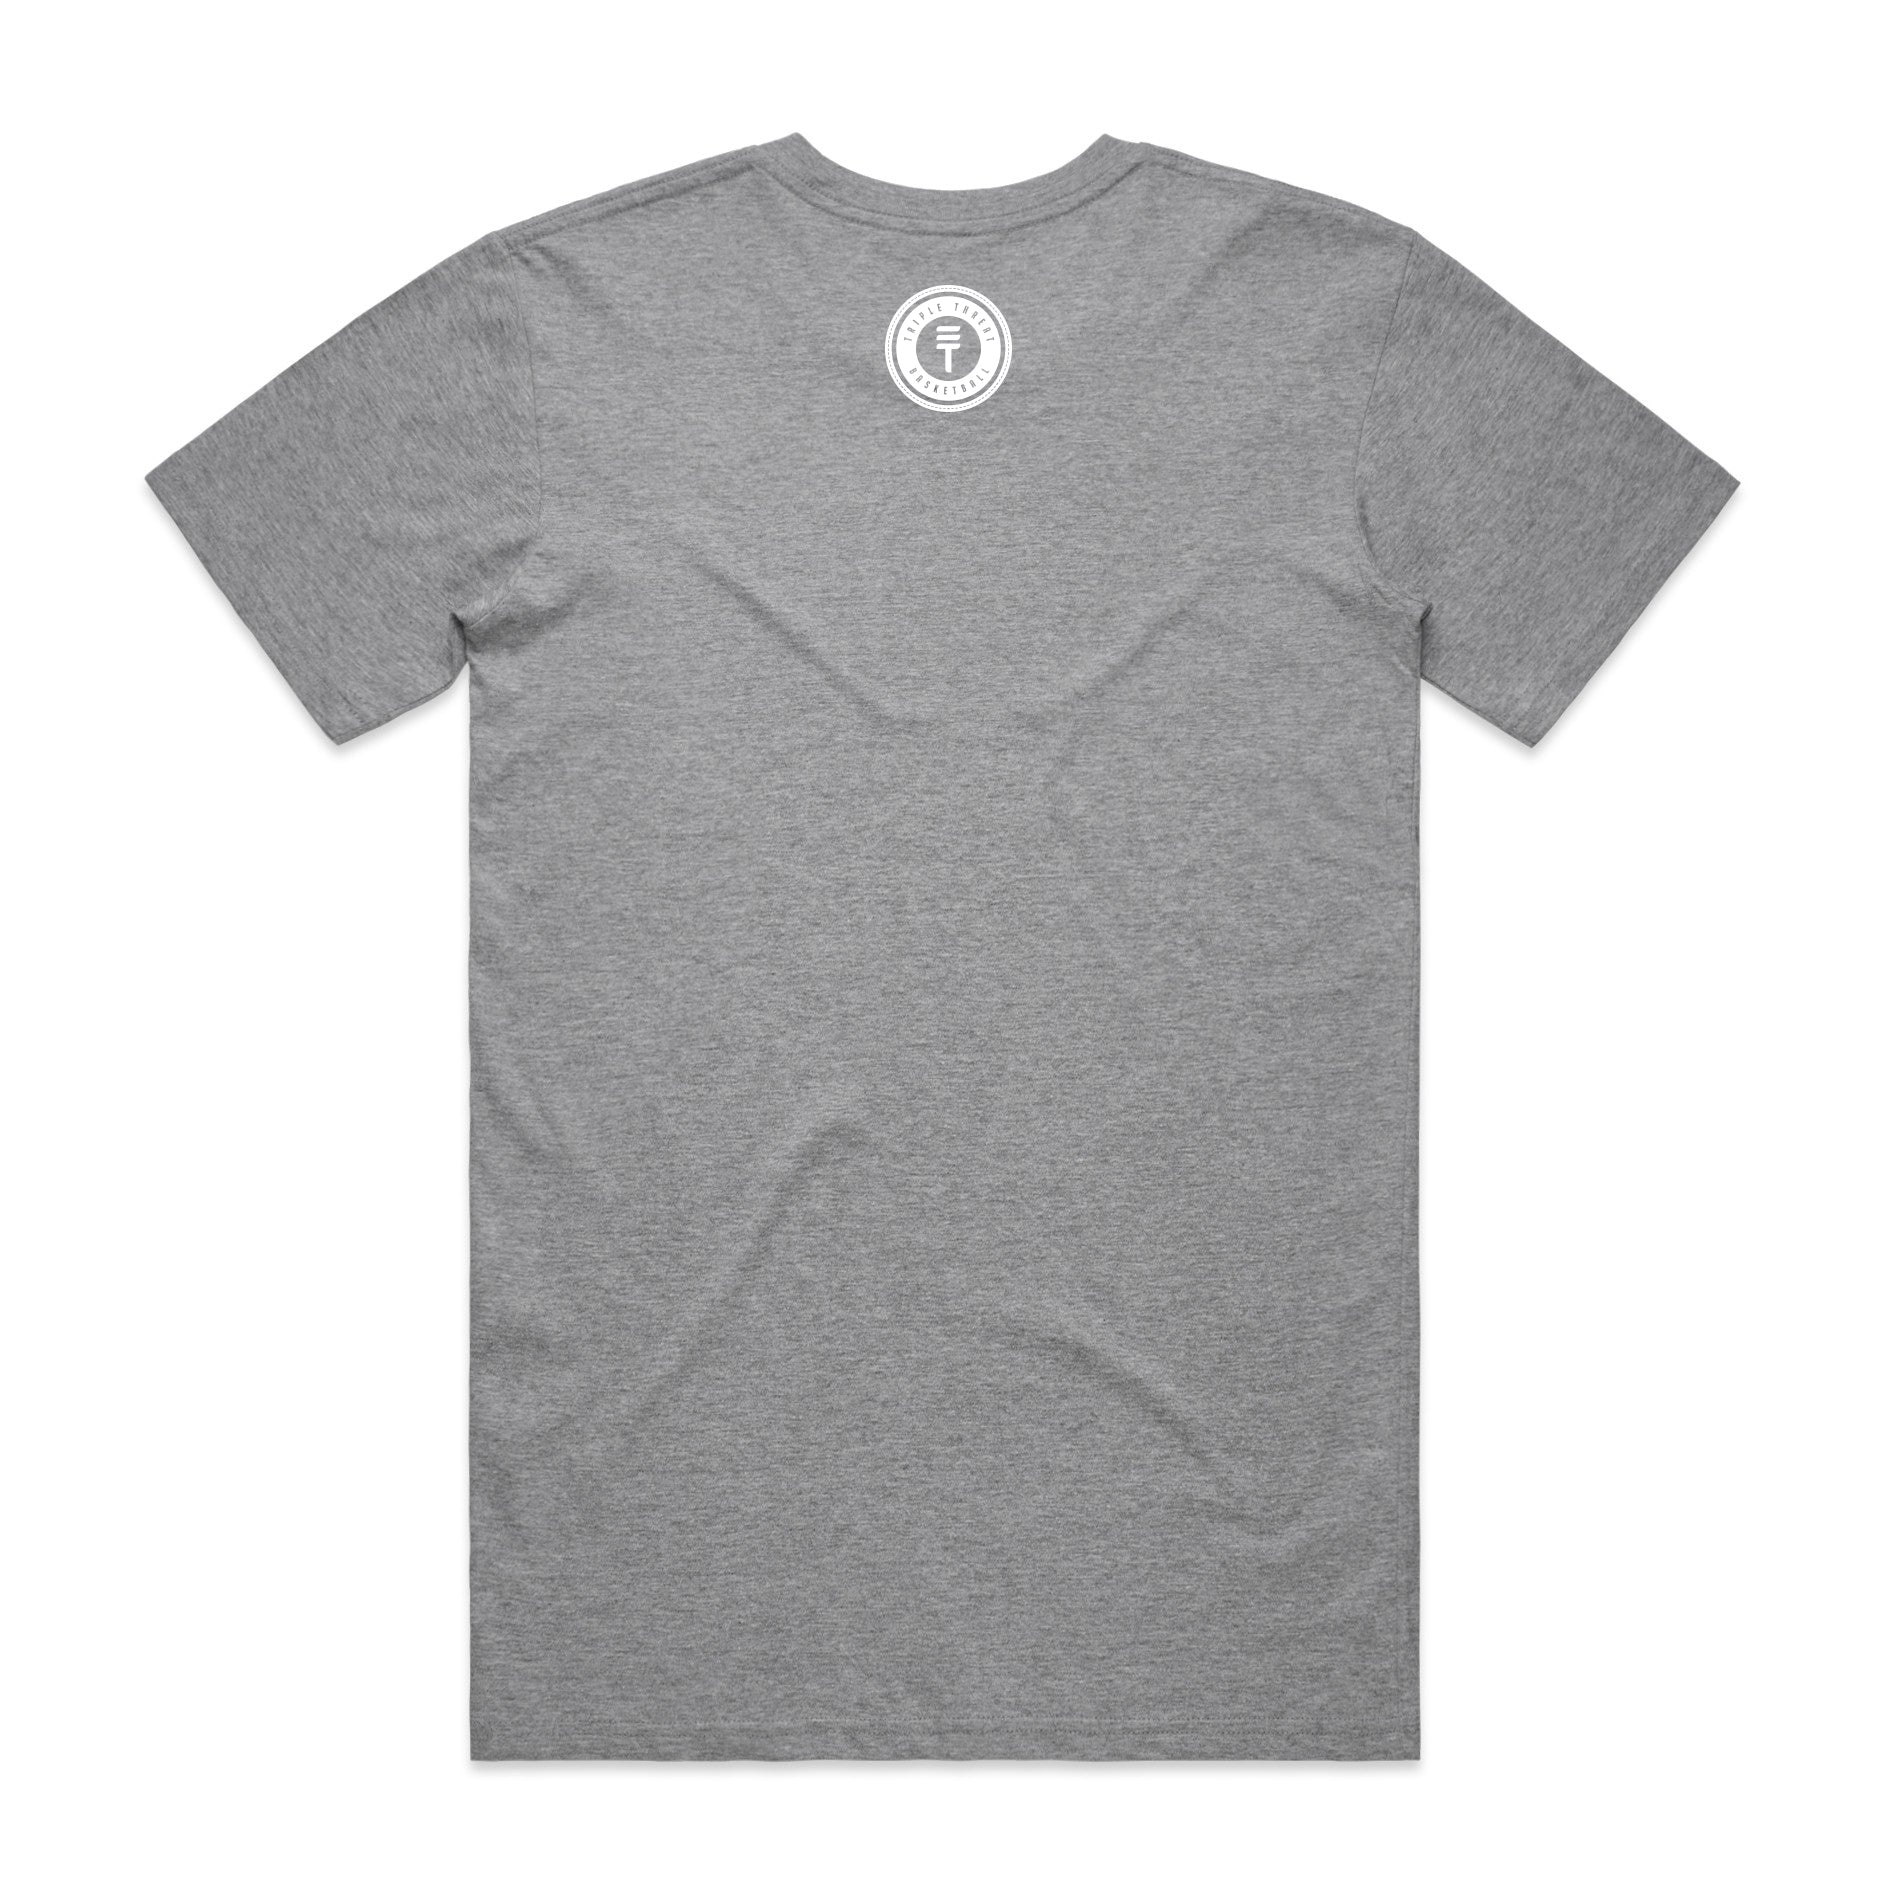 ICON LOGO T-SHIRT - GREY